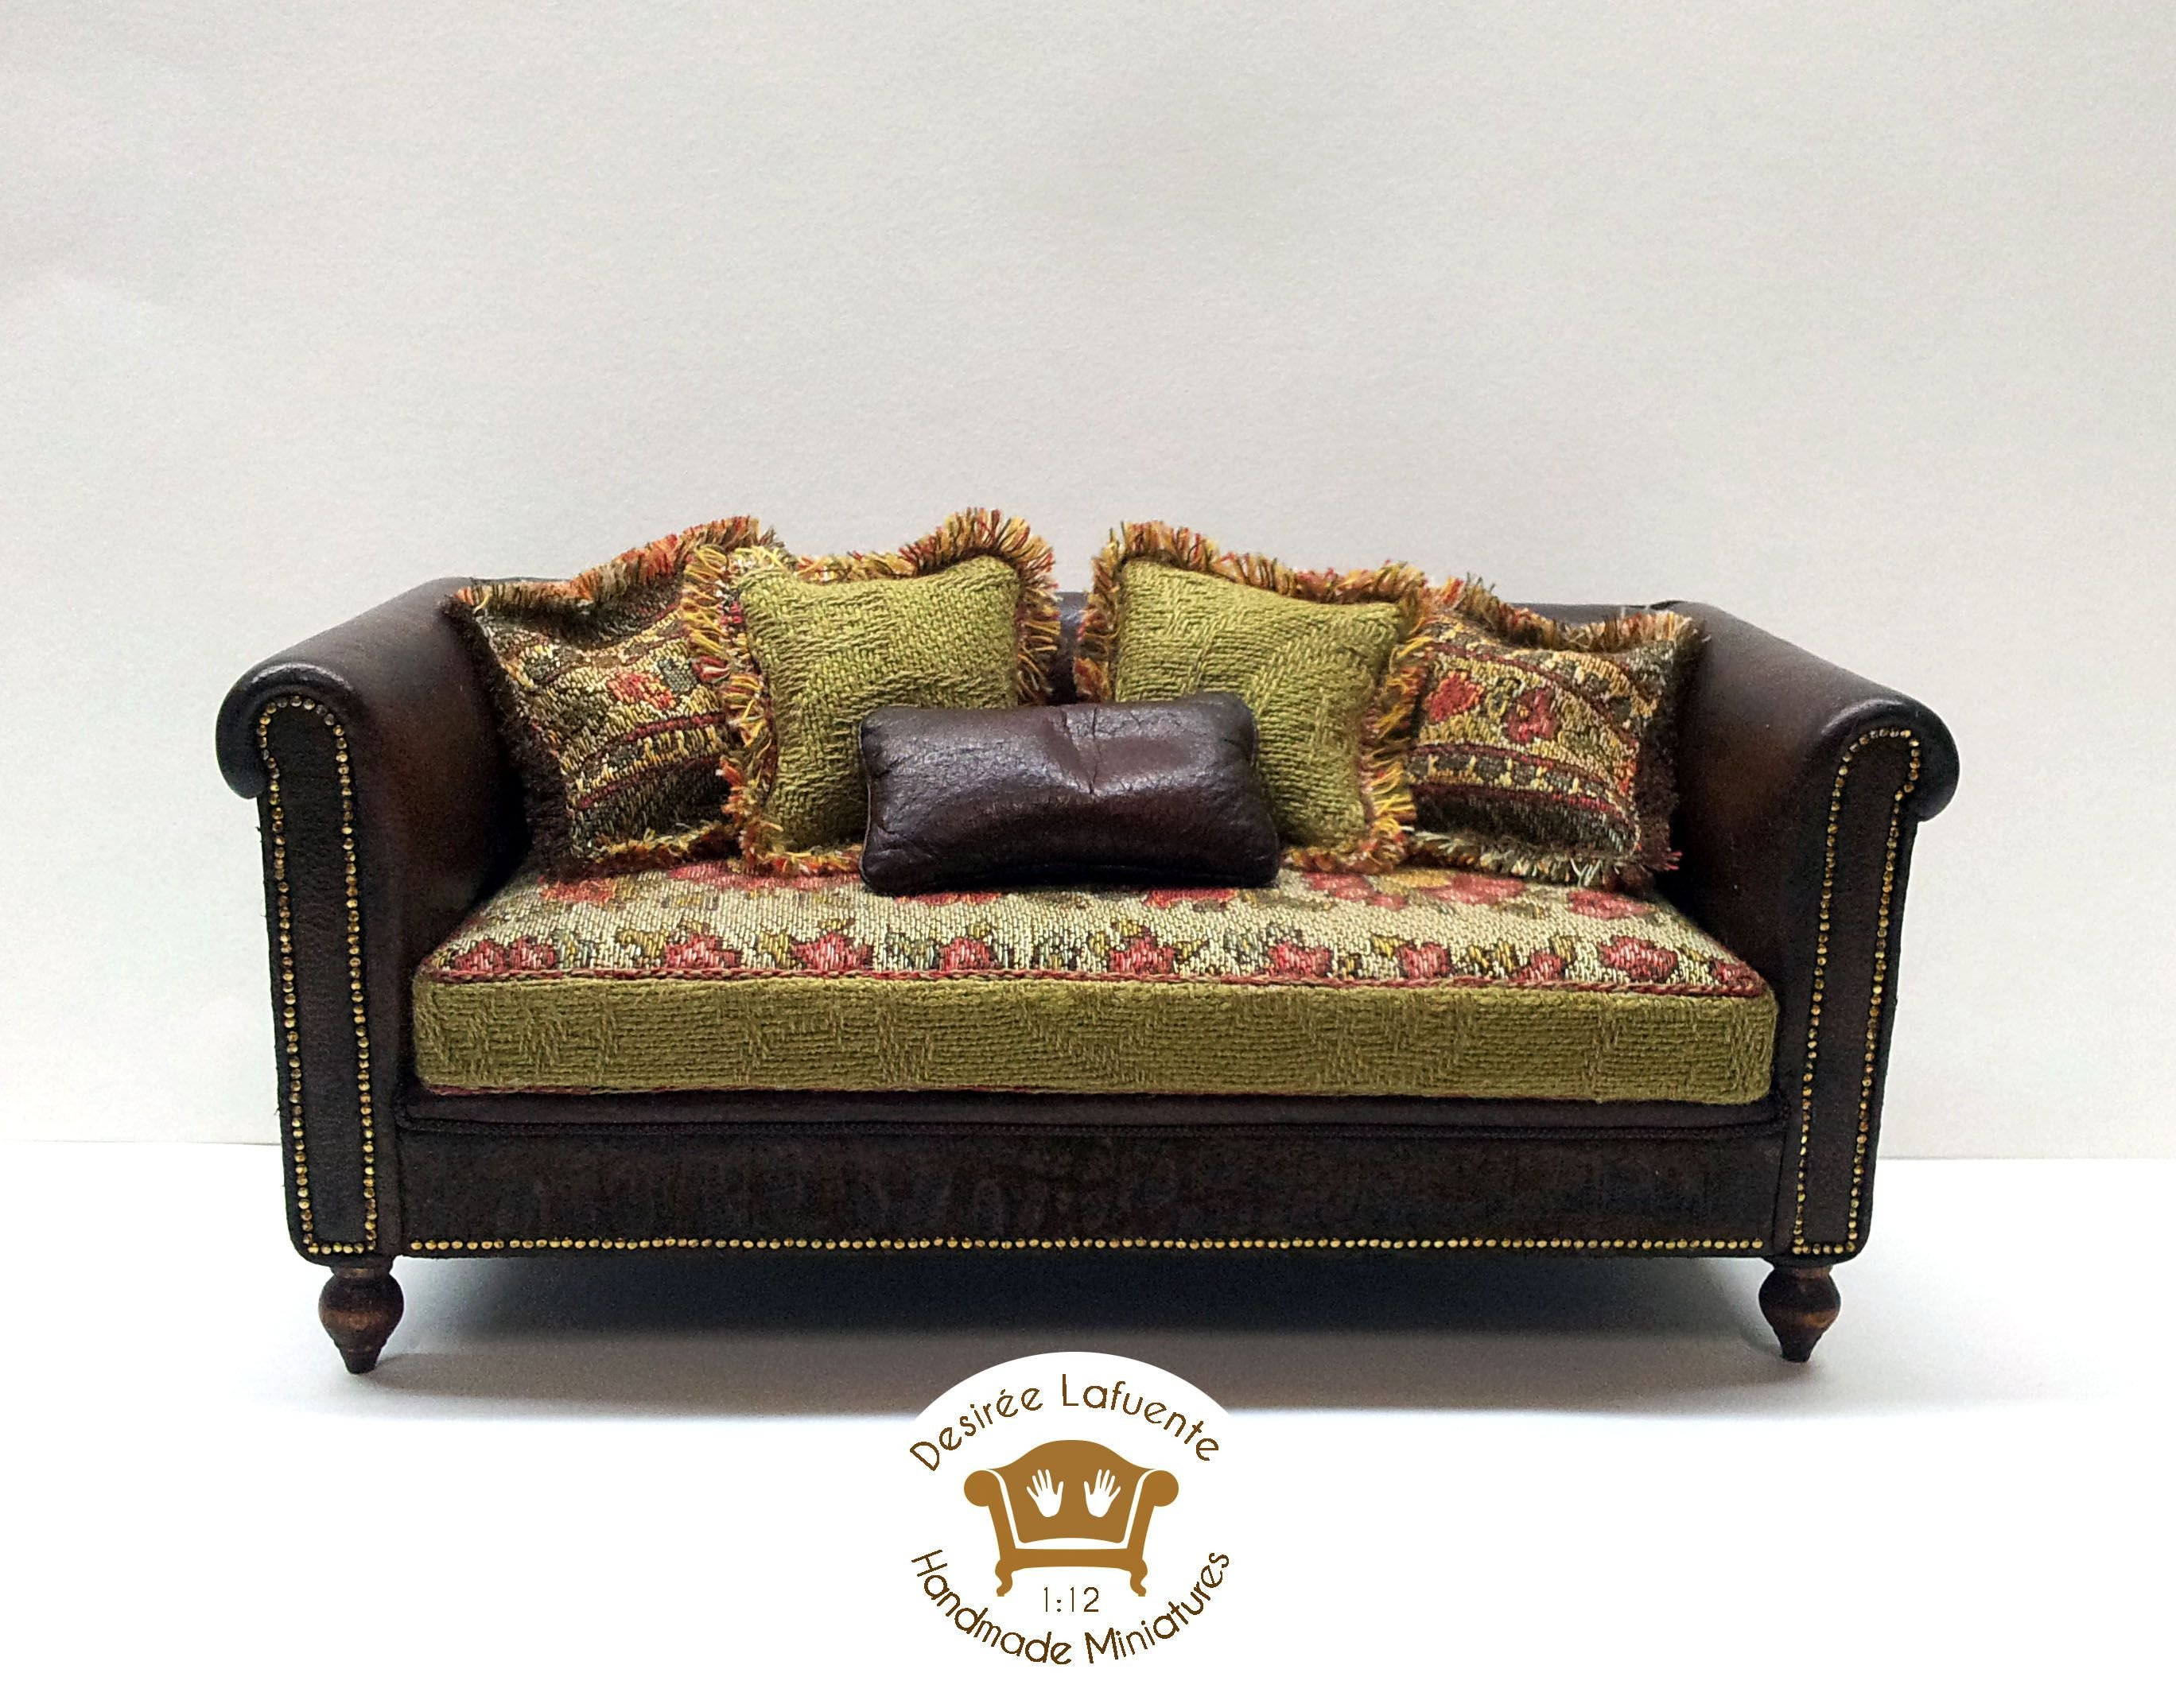 Mini Couch for Bedroom Inspirational 1 12 Scale Miniature sofa Miniatures